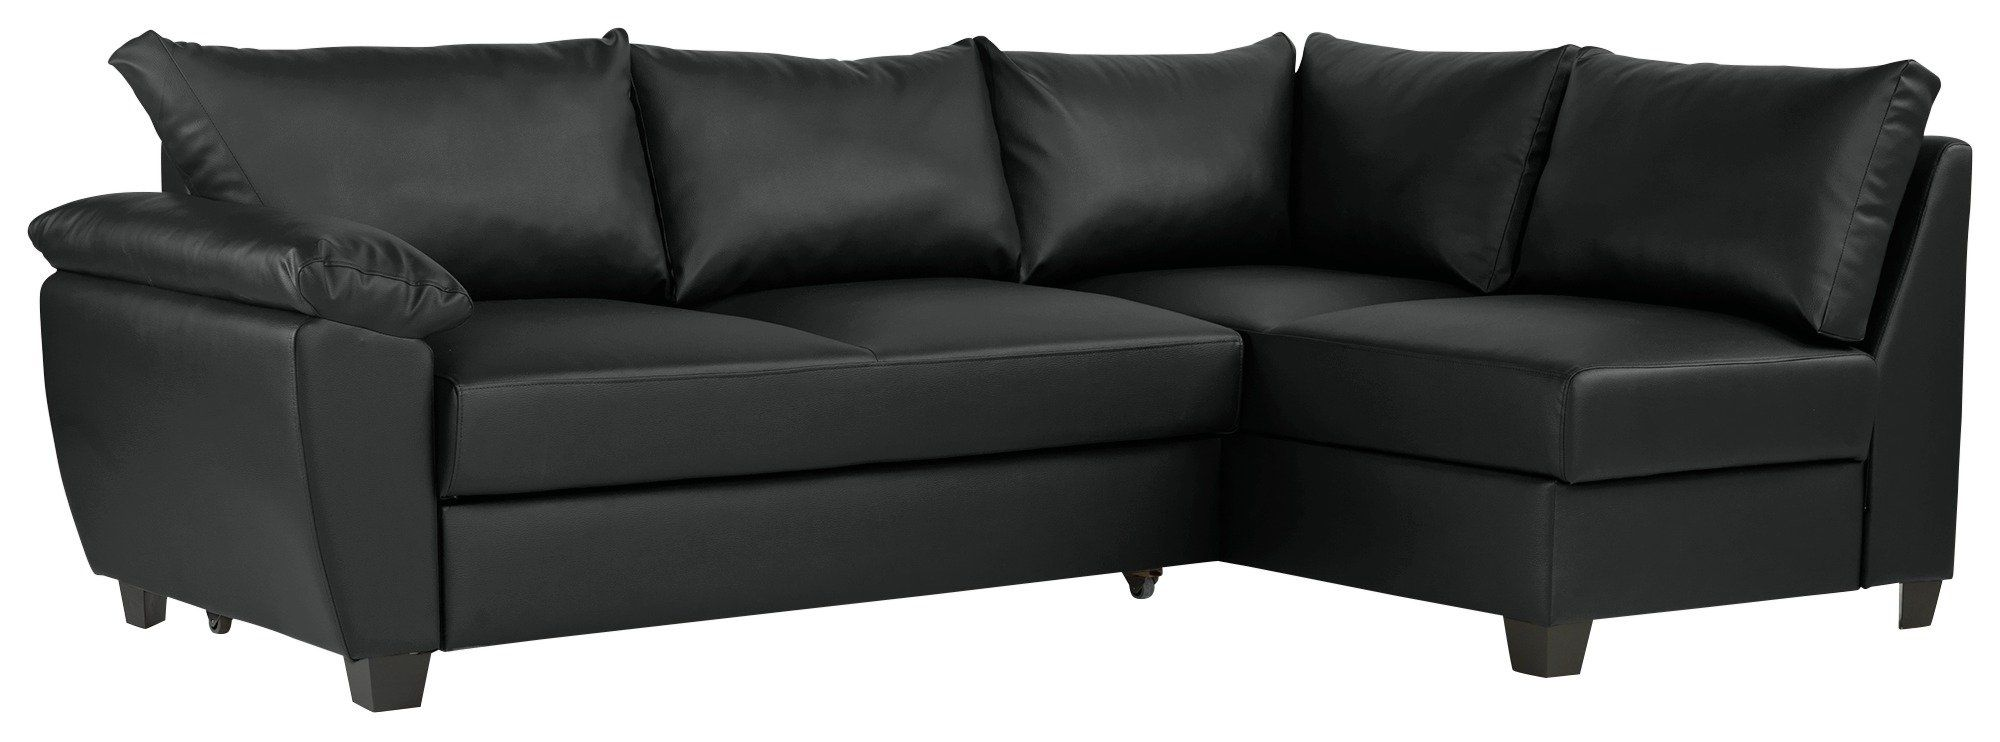 Argos Home Fernando Right Corner Sofa Bed Black In 2020 Sofa Bed Black Corner Sofa Sofa Bed